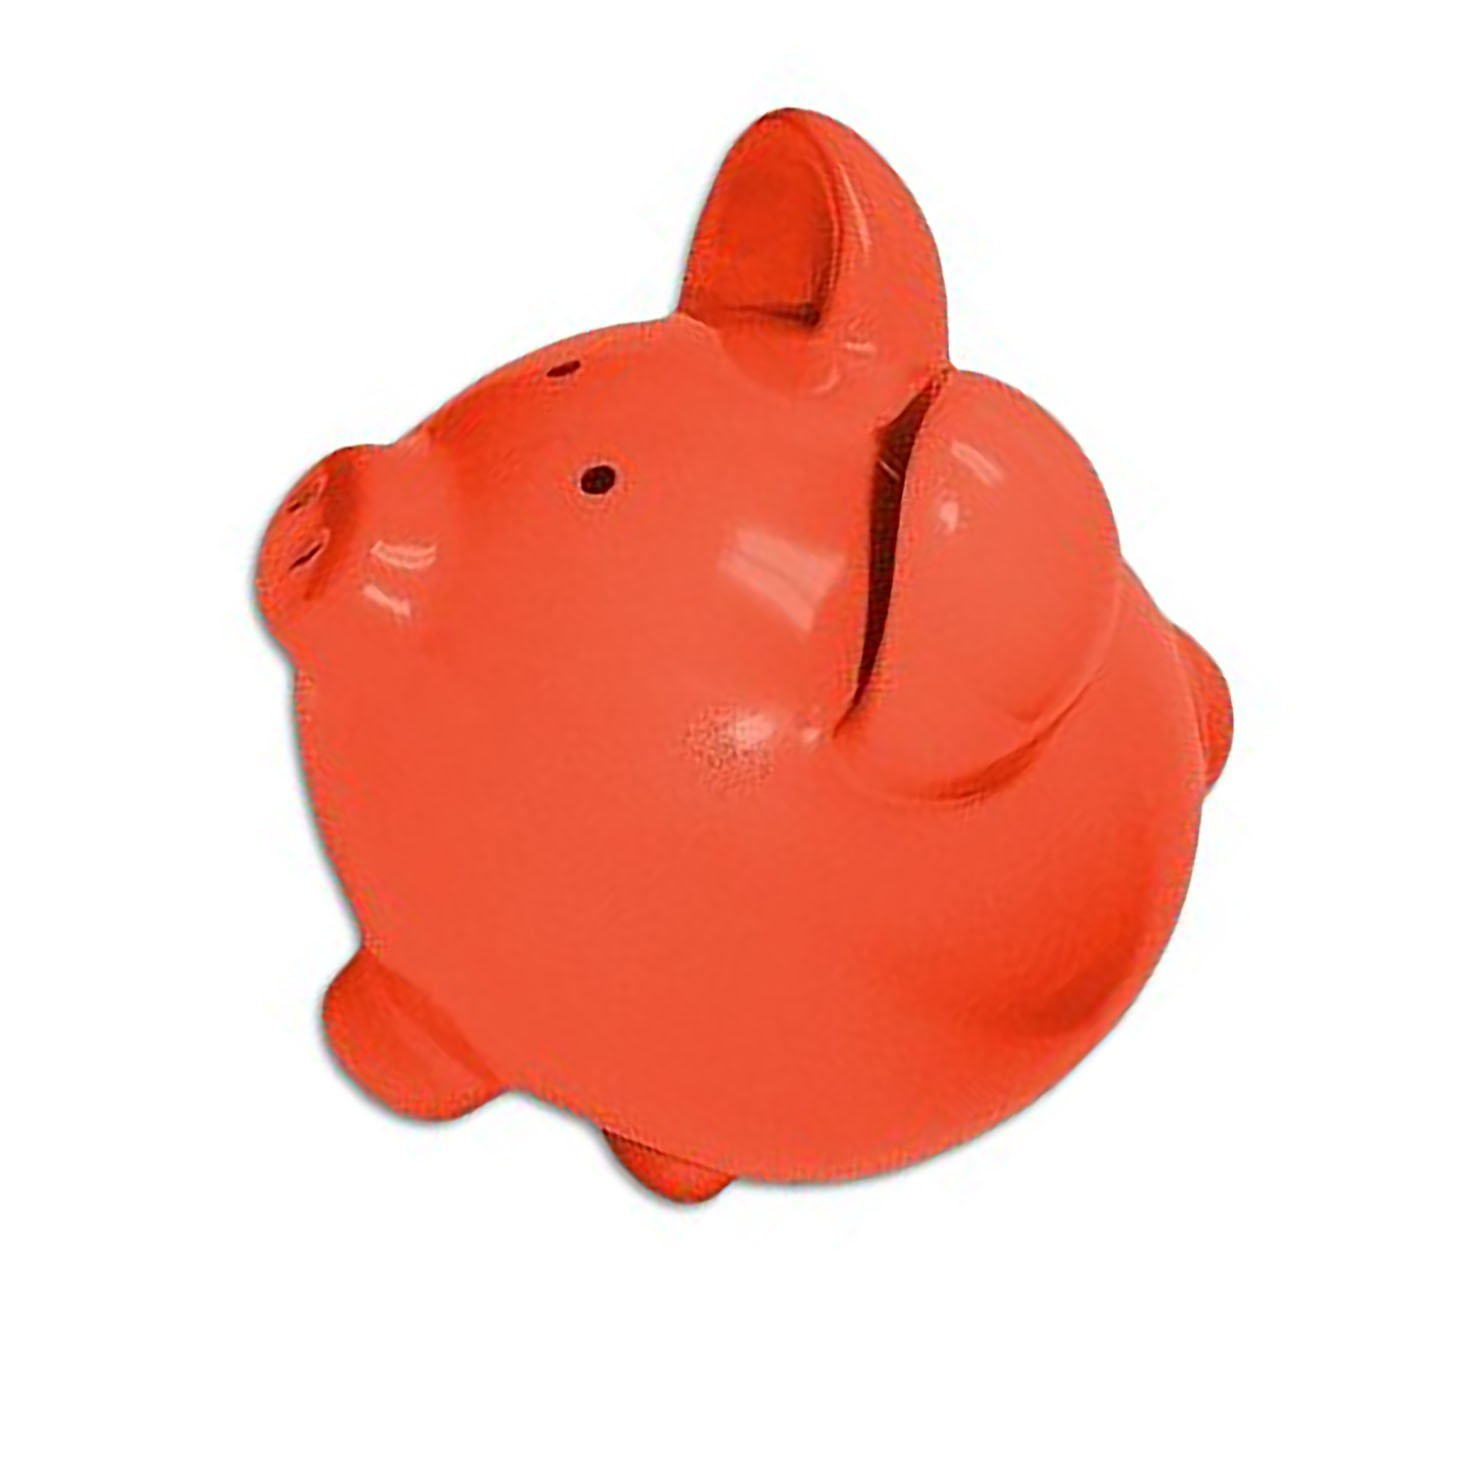 """Completely Custom {13"""" x 13'' Inch} 1 Single Large, Coin & Cash Bank Decoration for Holding Money, Made of Grade A Genuine Ceramic w/ Contemporary Solid Colored Bank Piggy Style {Orange & Black} by mySimple Products (Image #1)"""